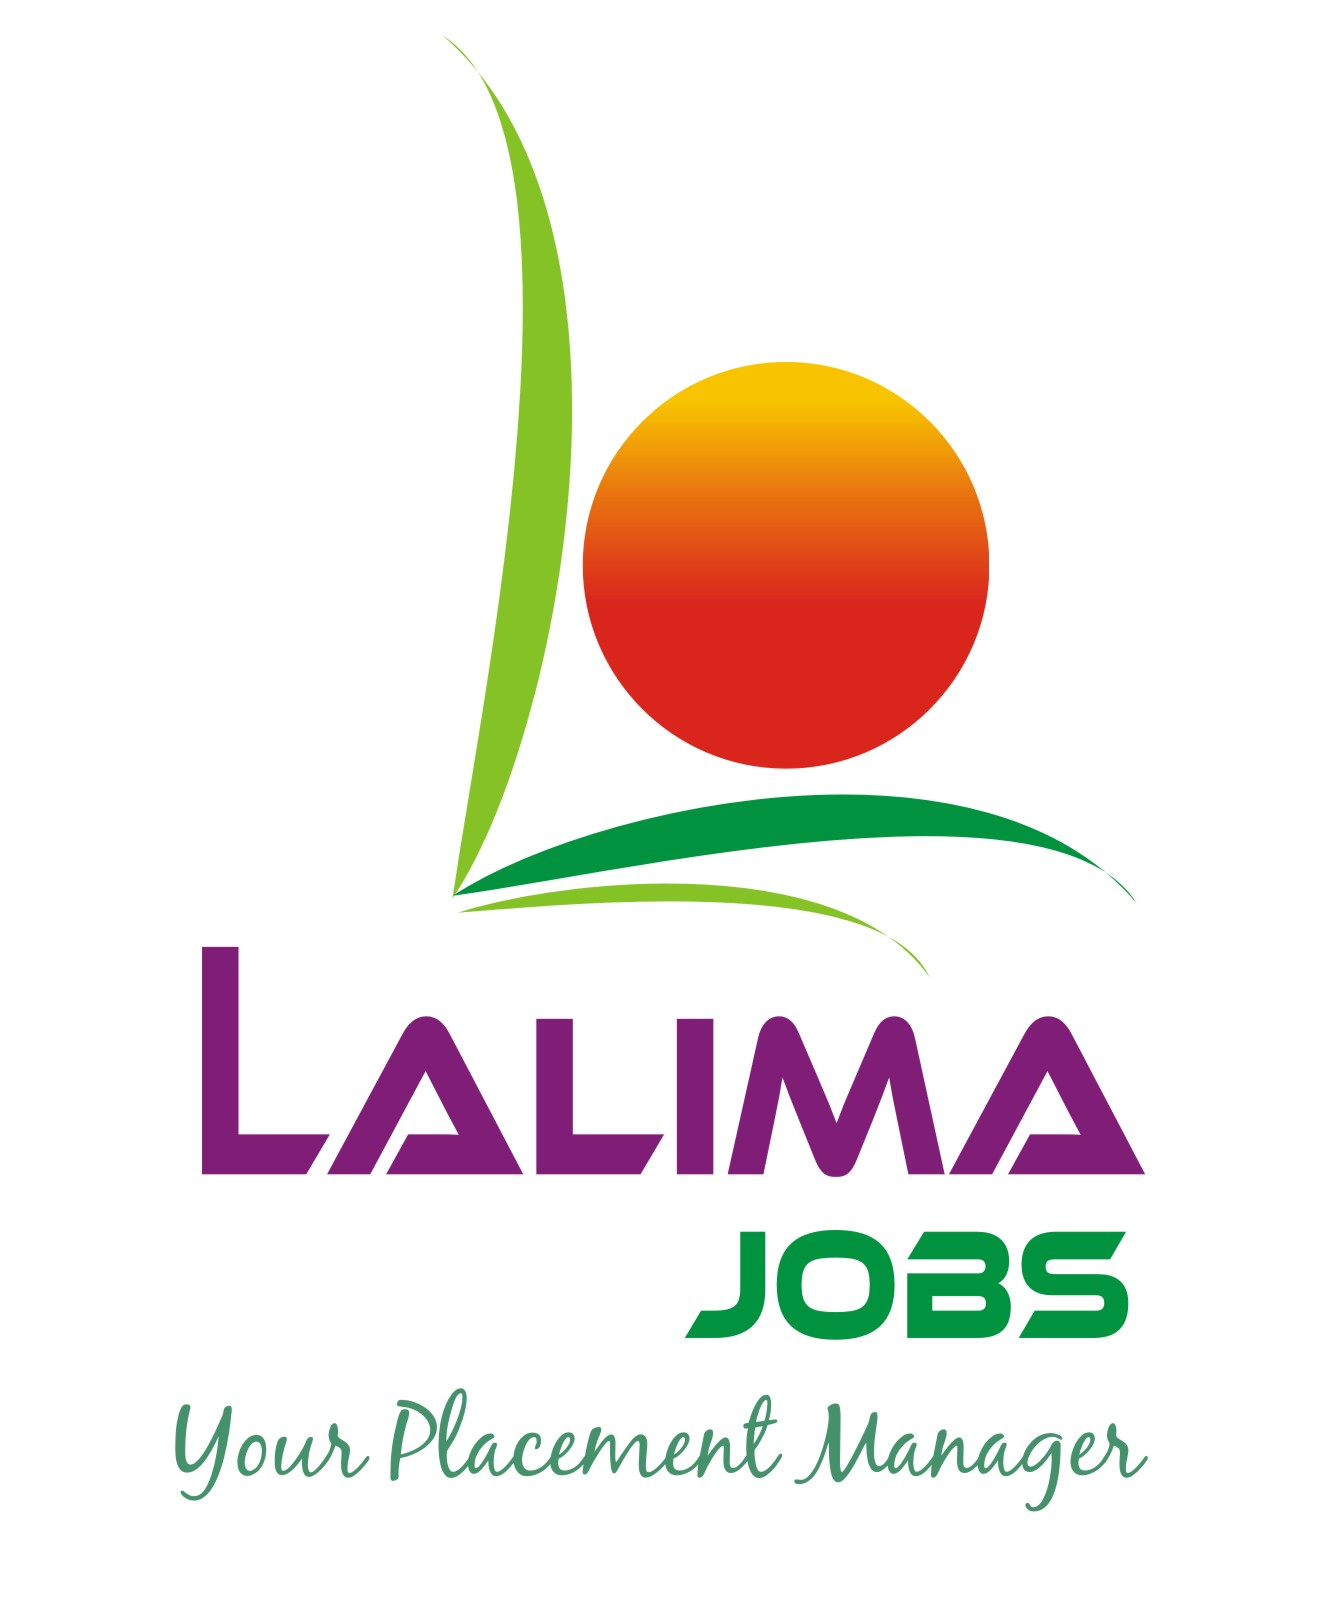 Lalima Jobs Pvt Ltd. logo